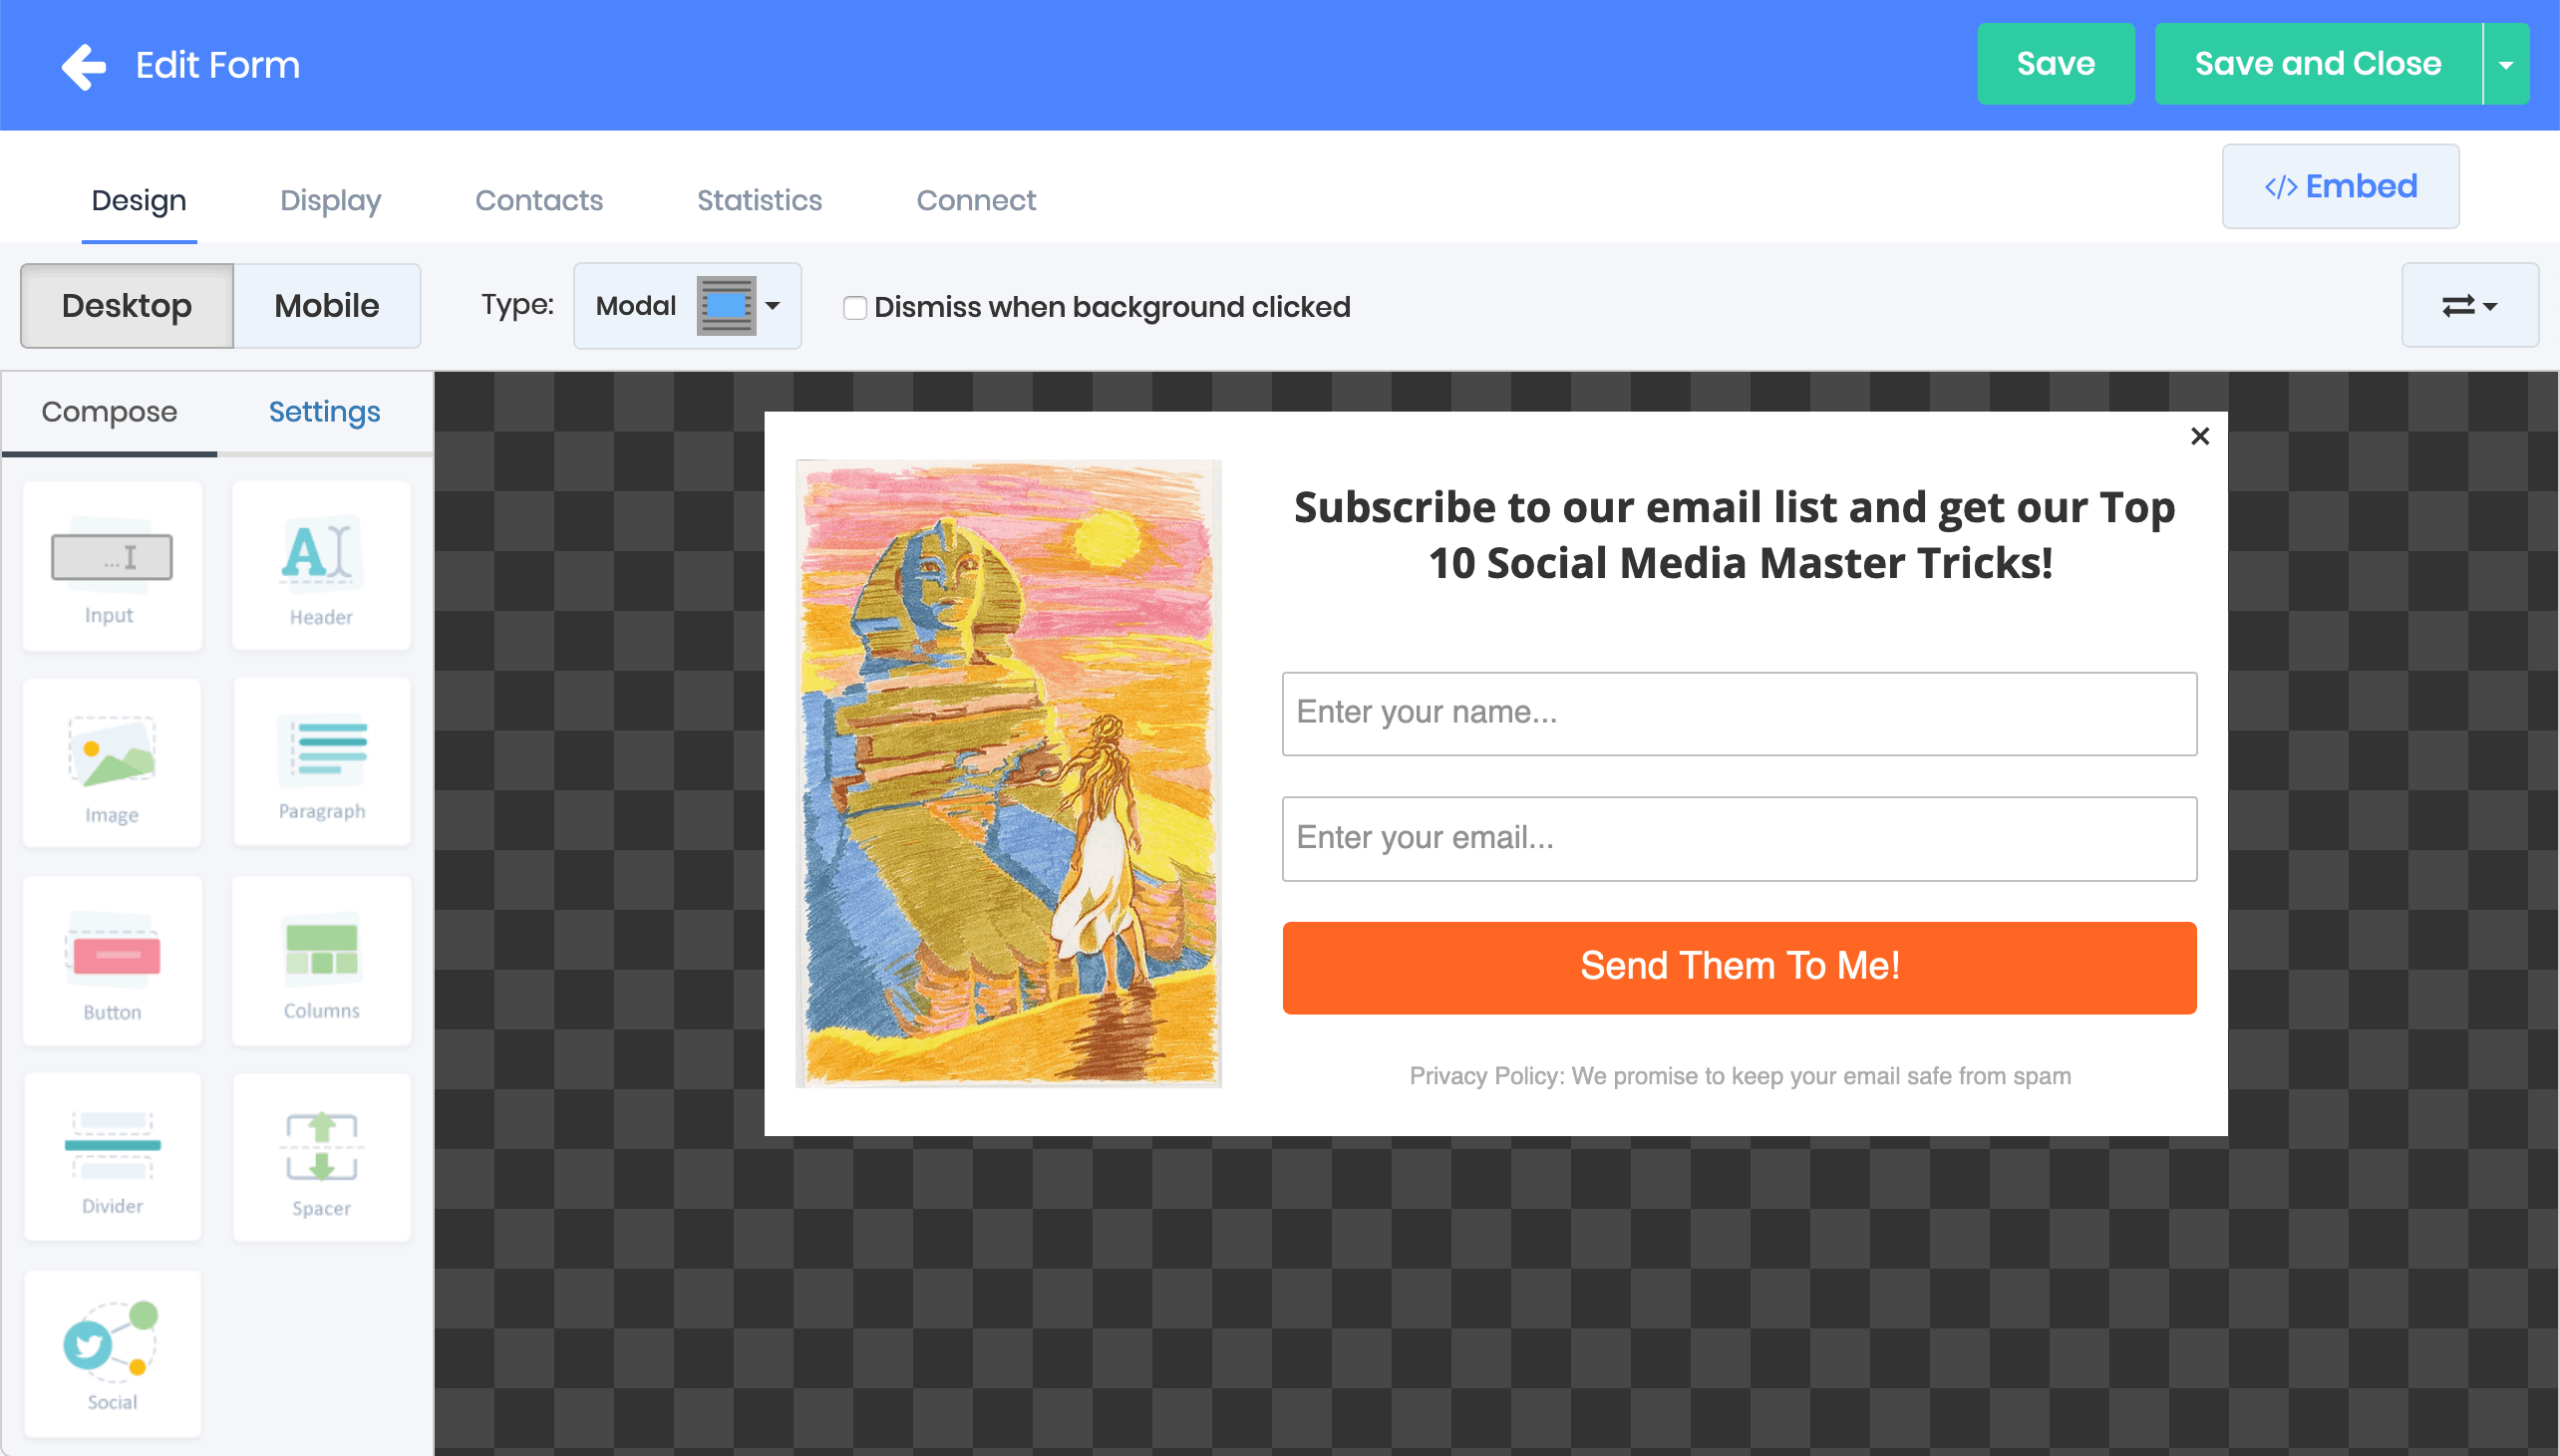 EmailDelivery.com allows users to create custom signup forms